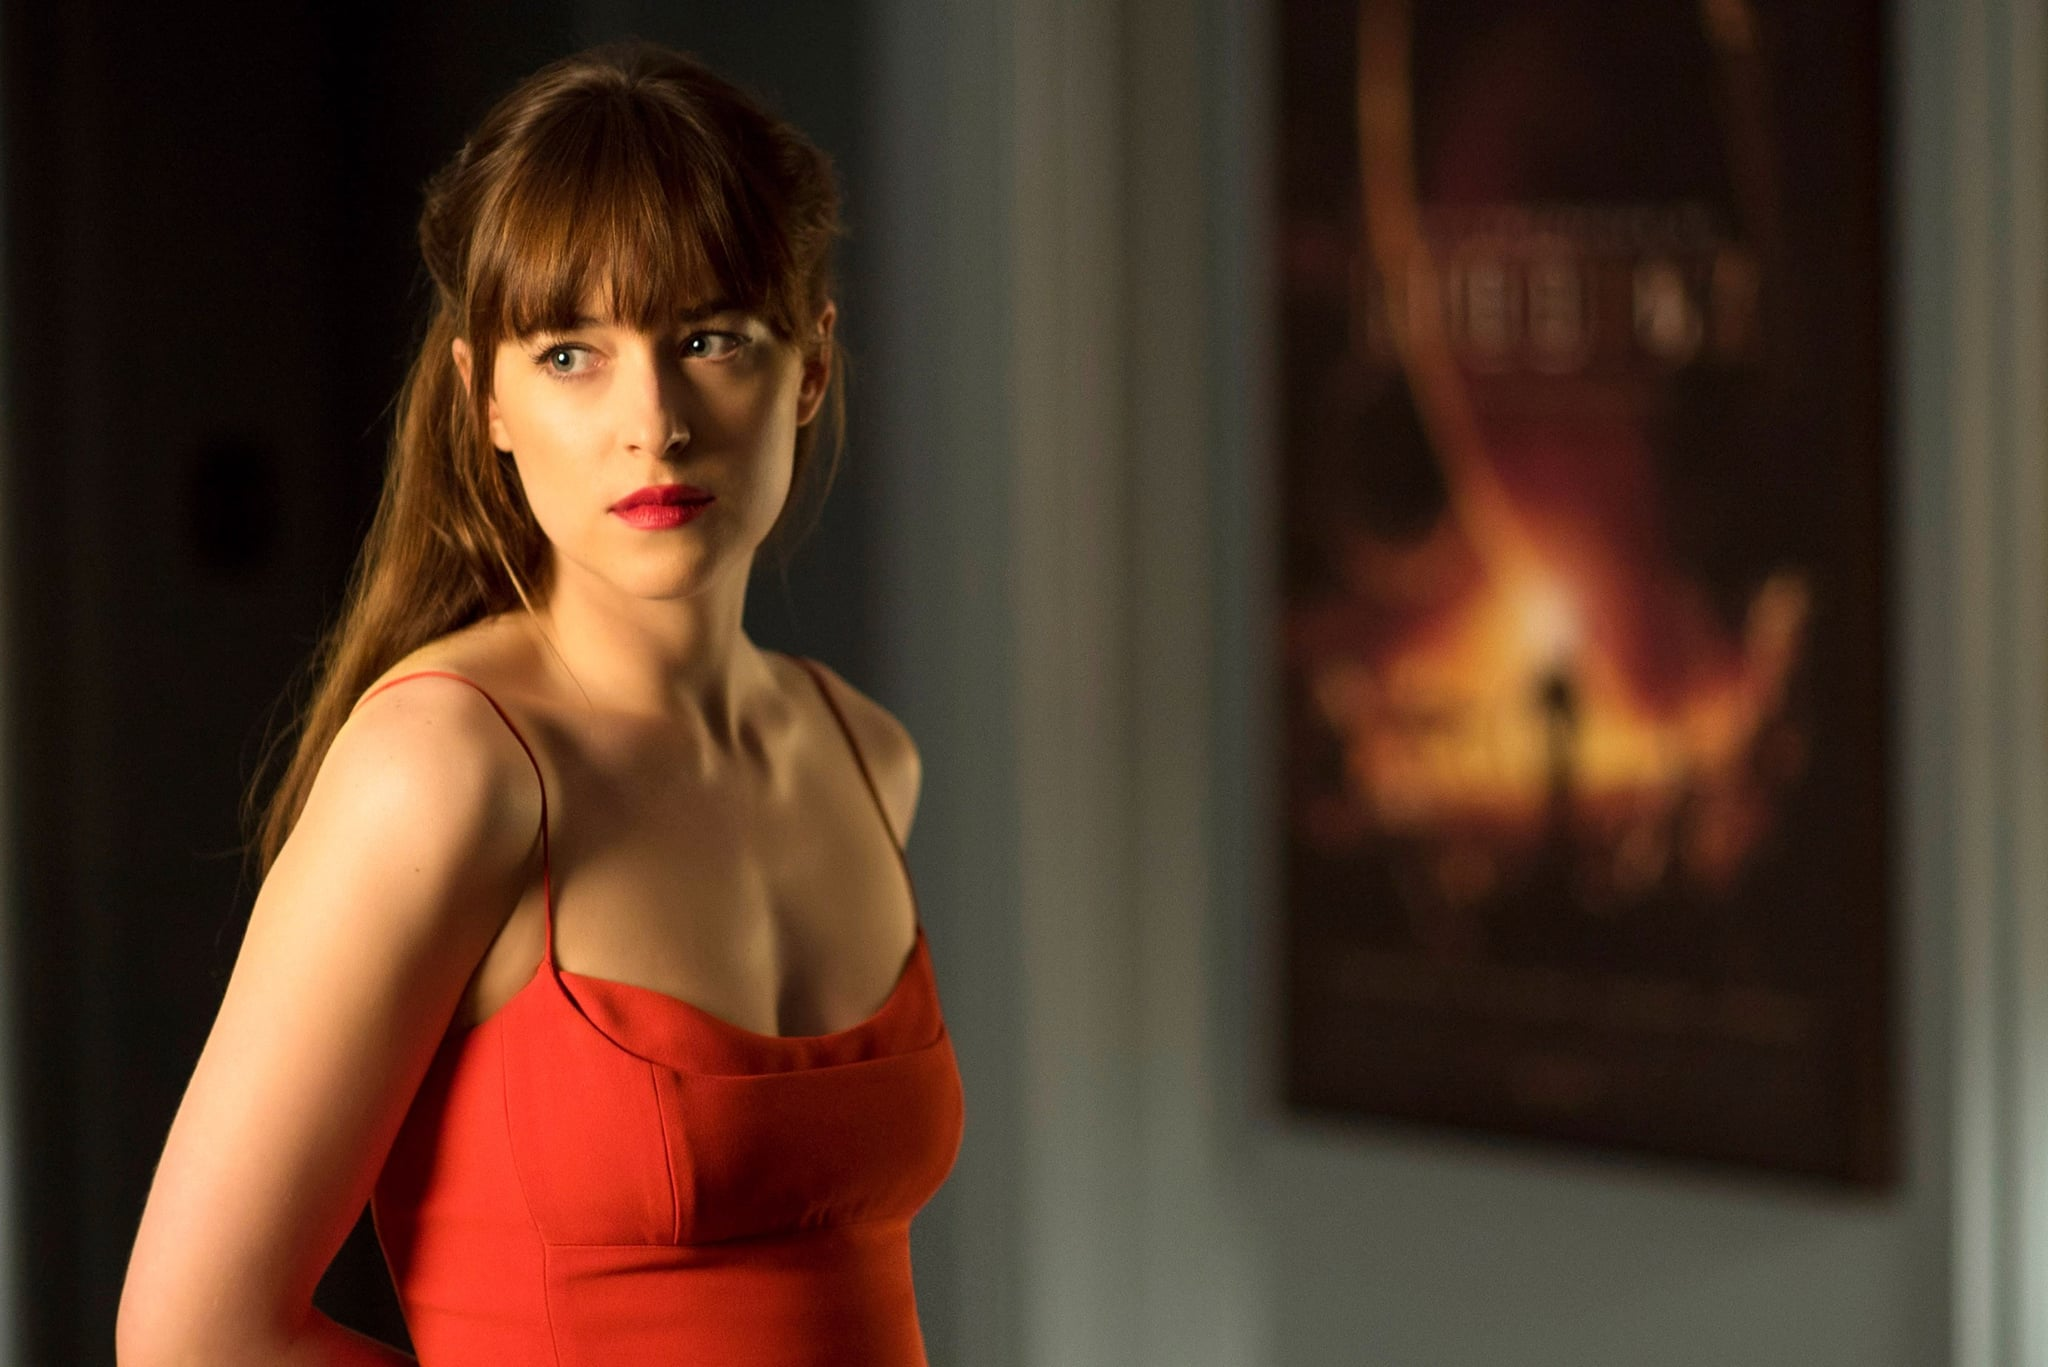 50 shades of grey sex excerpts love sex why wasn t the pool table scene in fifty shades darker